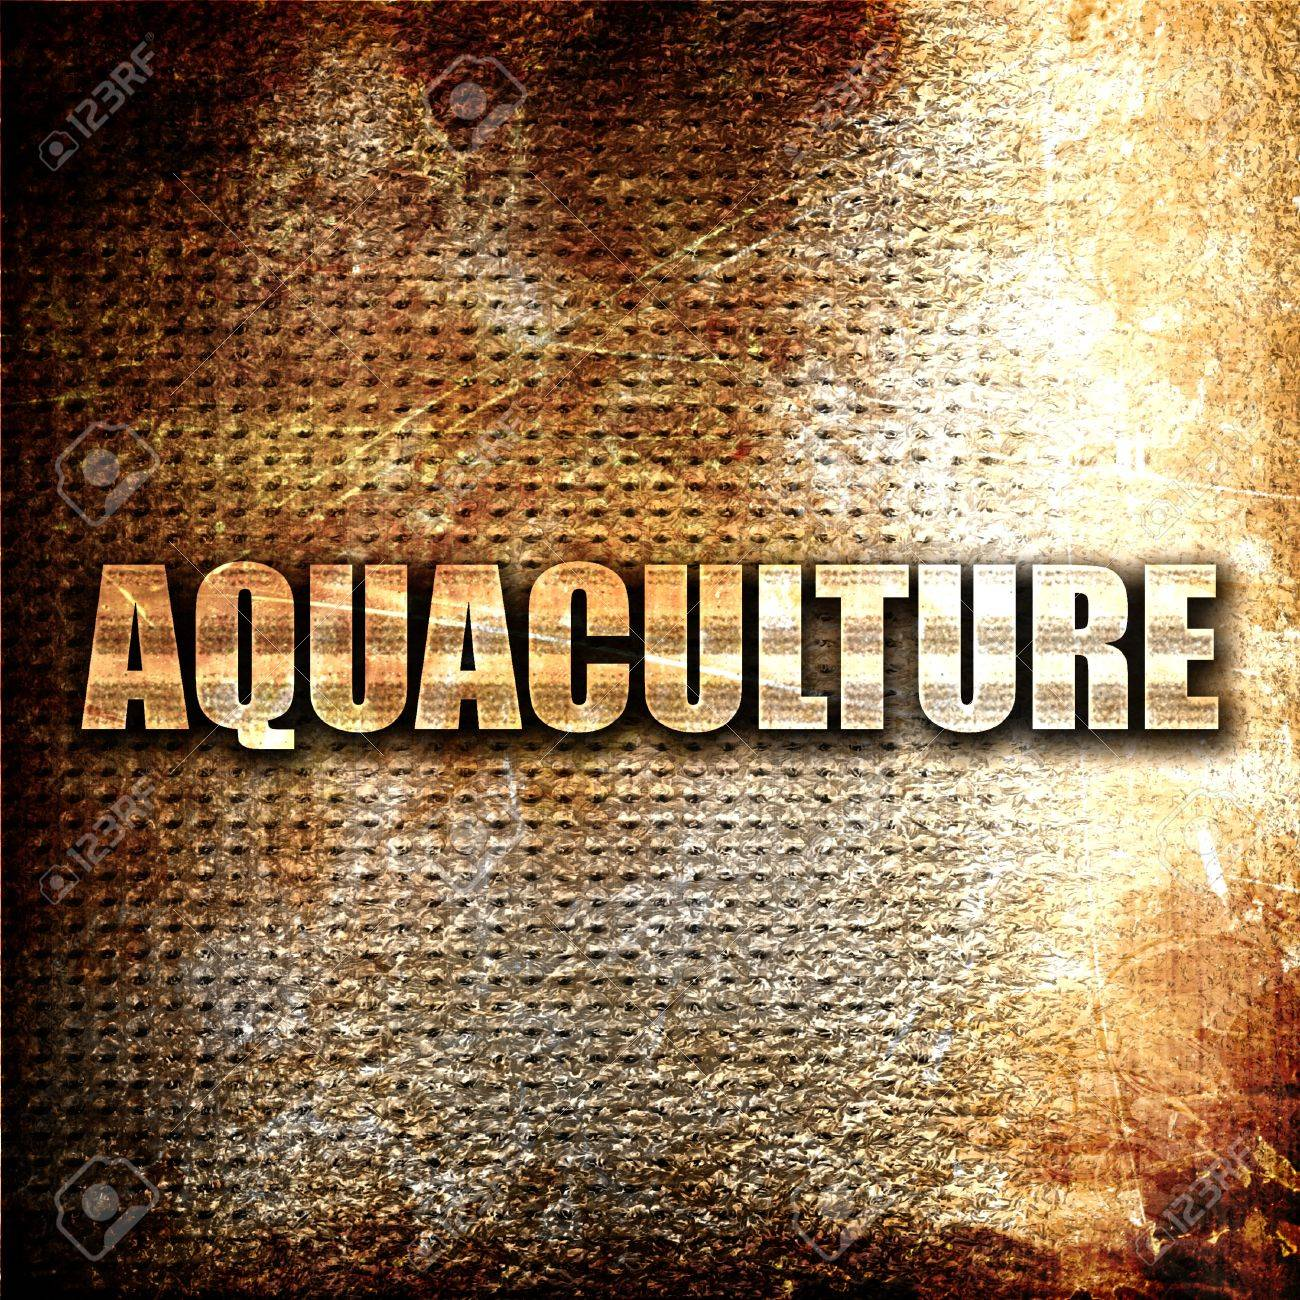 Aquaculture 3D Rendering Metal Text On Rust Background Stock 1300x1300